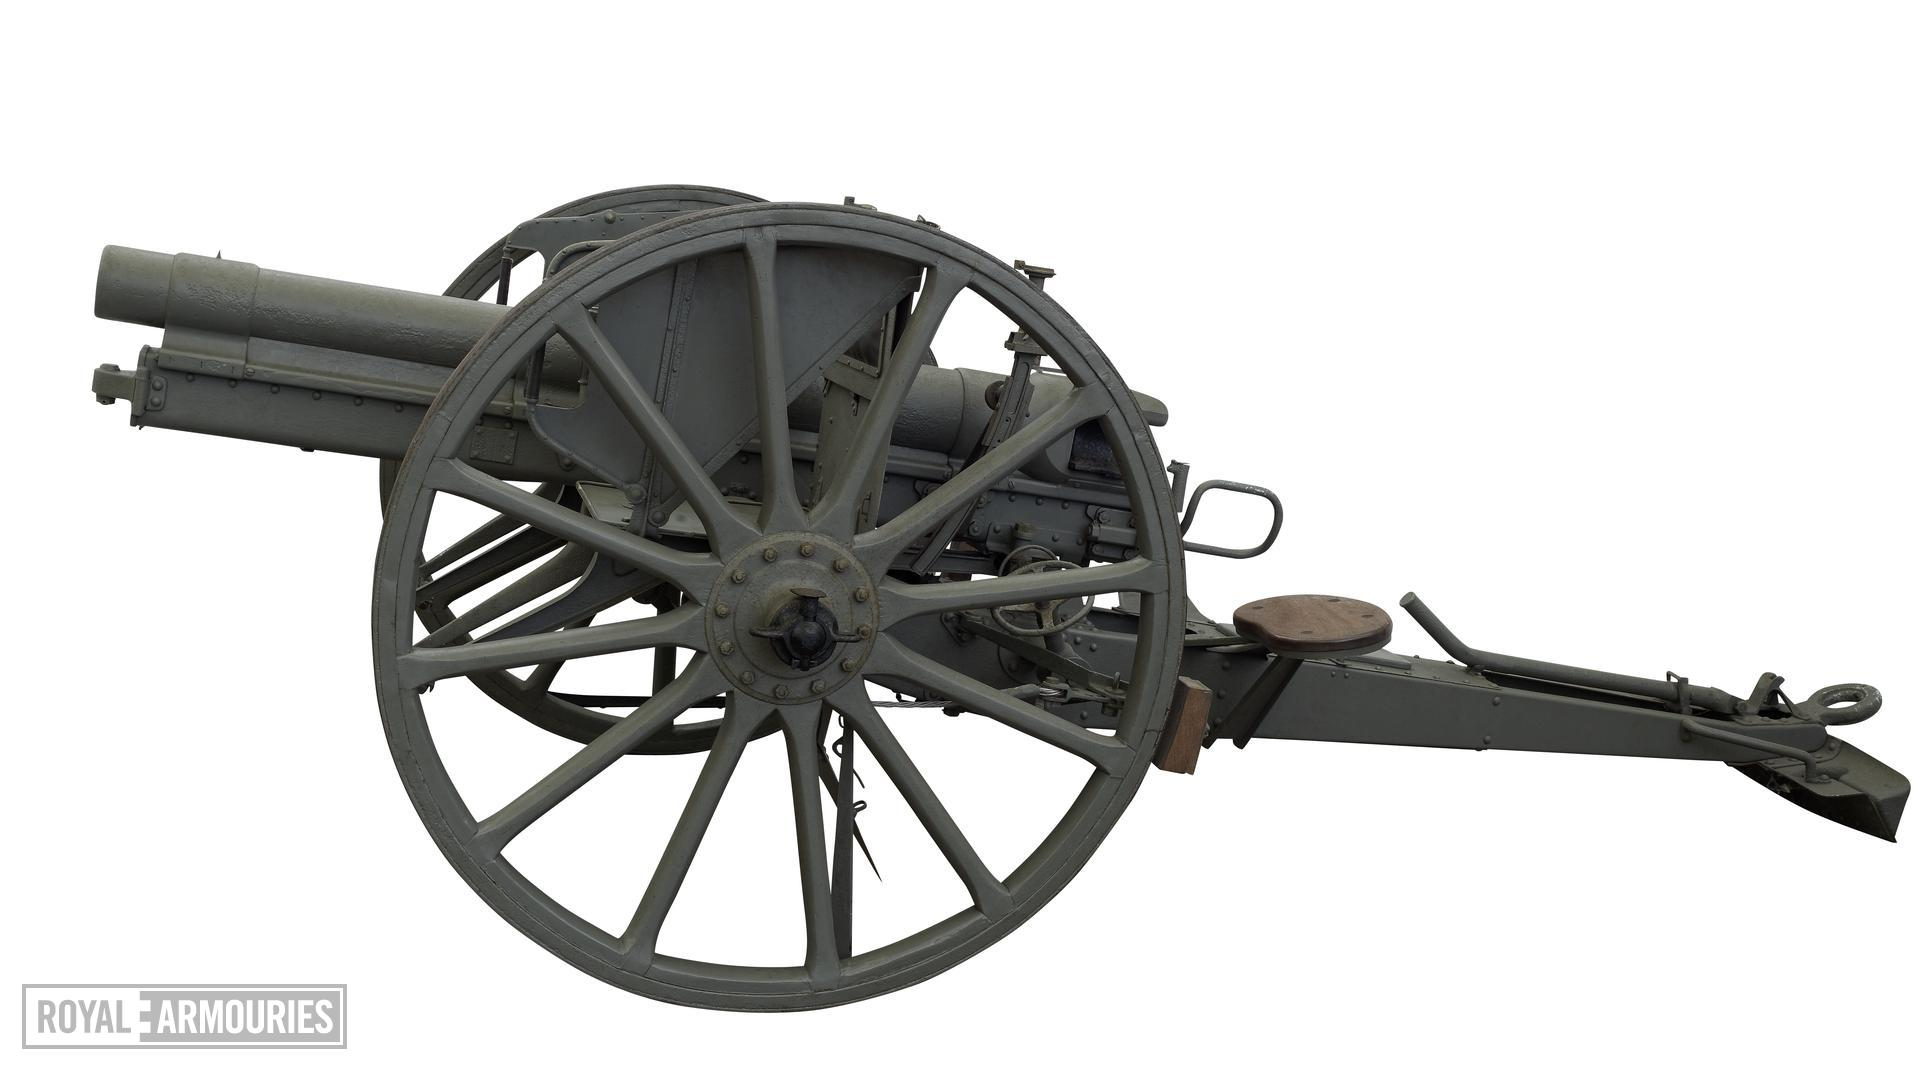 77mm Rifled breech-loading field gun and carriage, German, 1915. Model of 1896, new pattern; carriage original.